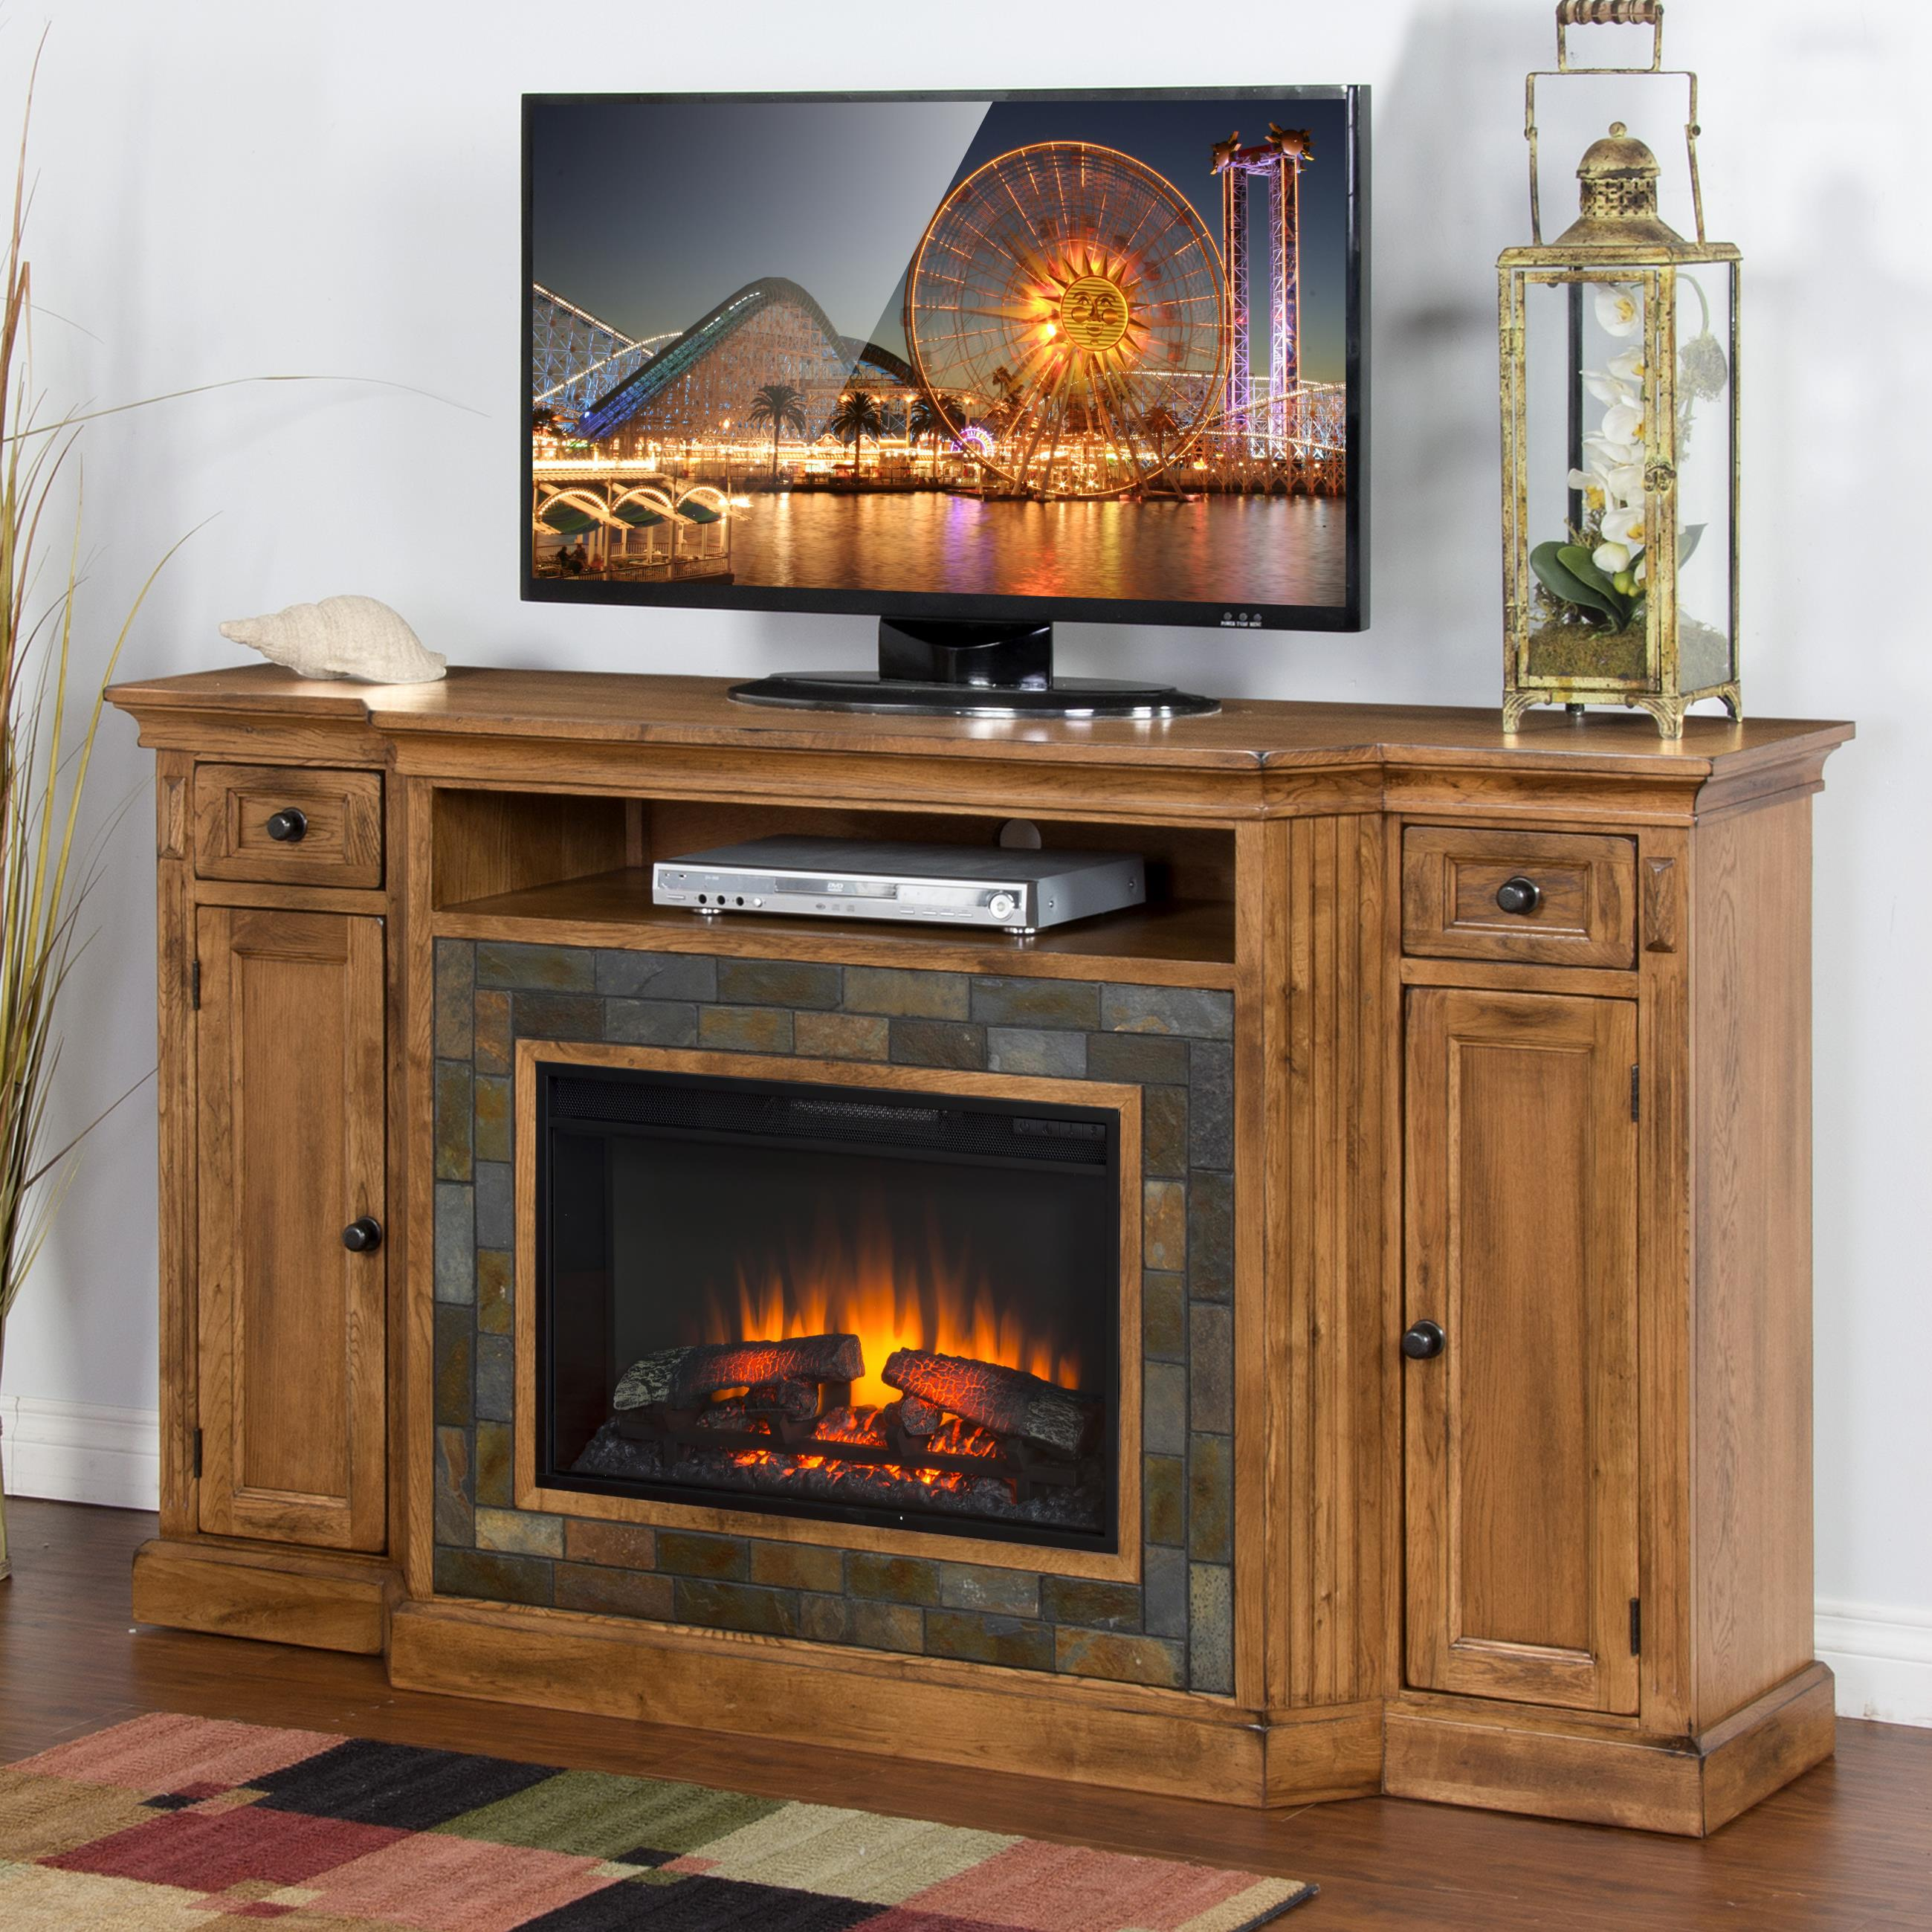 Distressed Oak Fireplace Tv Console W 26 Quot Firebox And